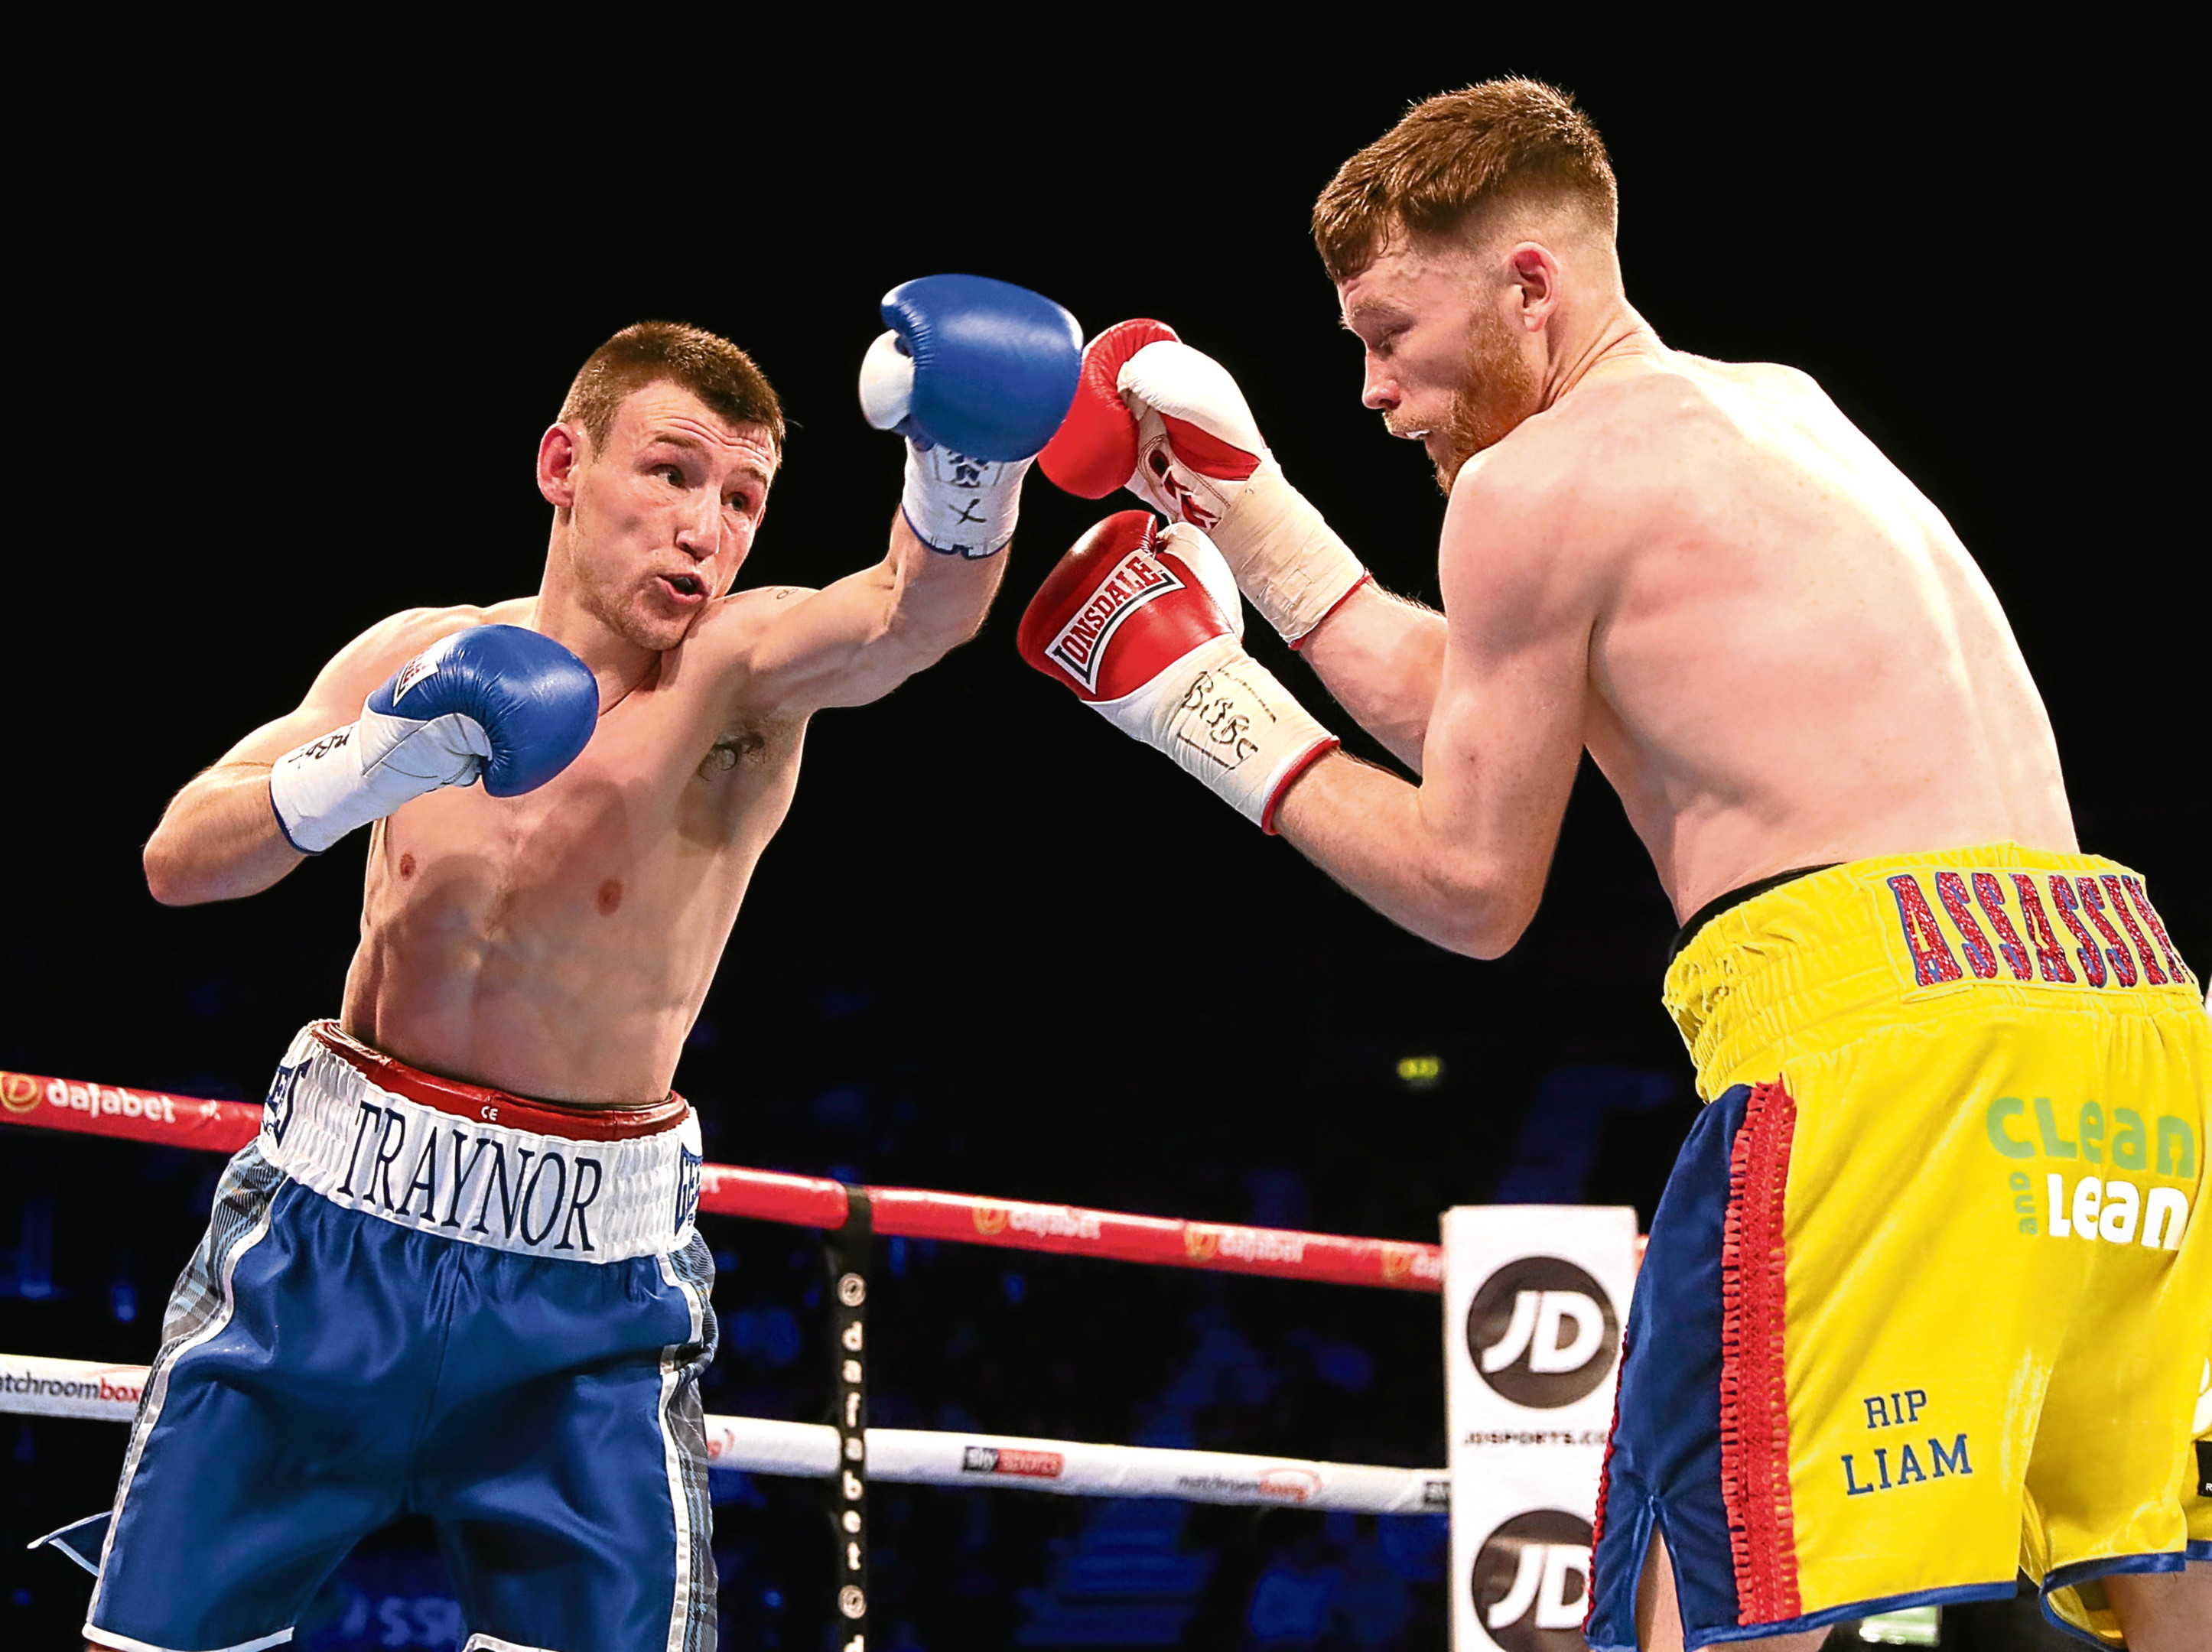 James Tennyson in action against Darren Traynor during their WBA International Super-Featherweight Championship at the SSE Arena, Belfast.